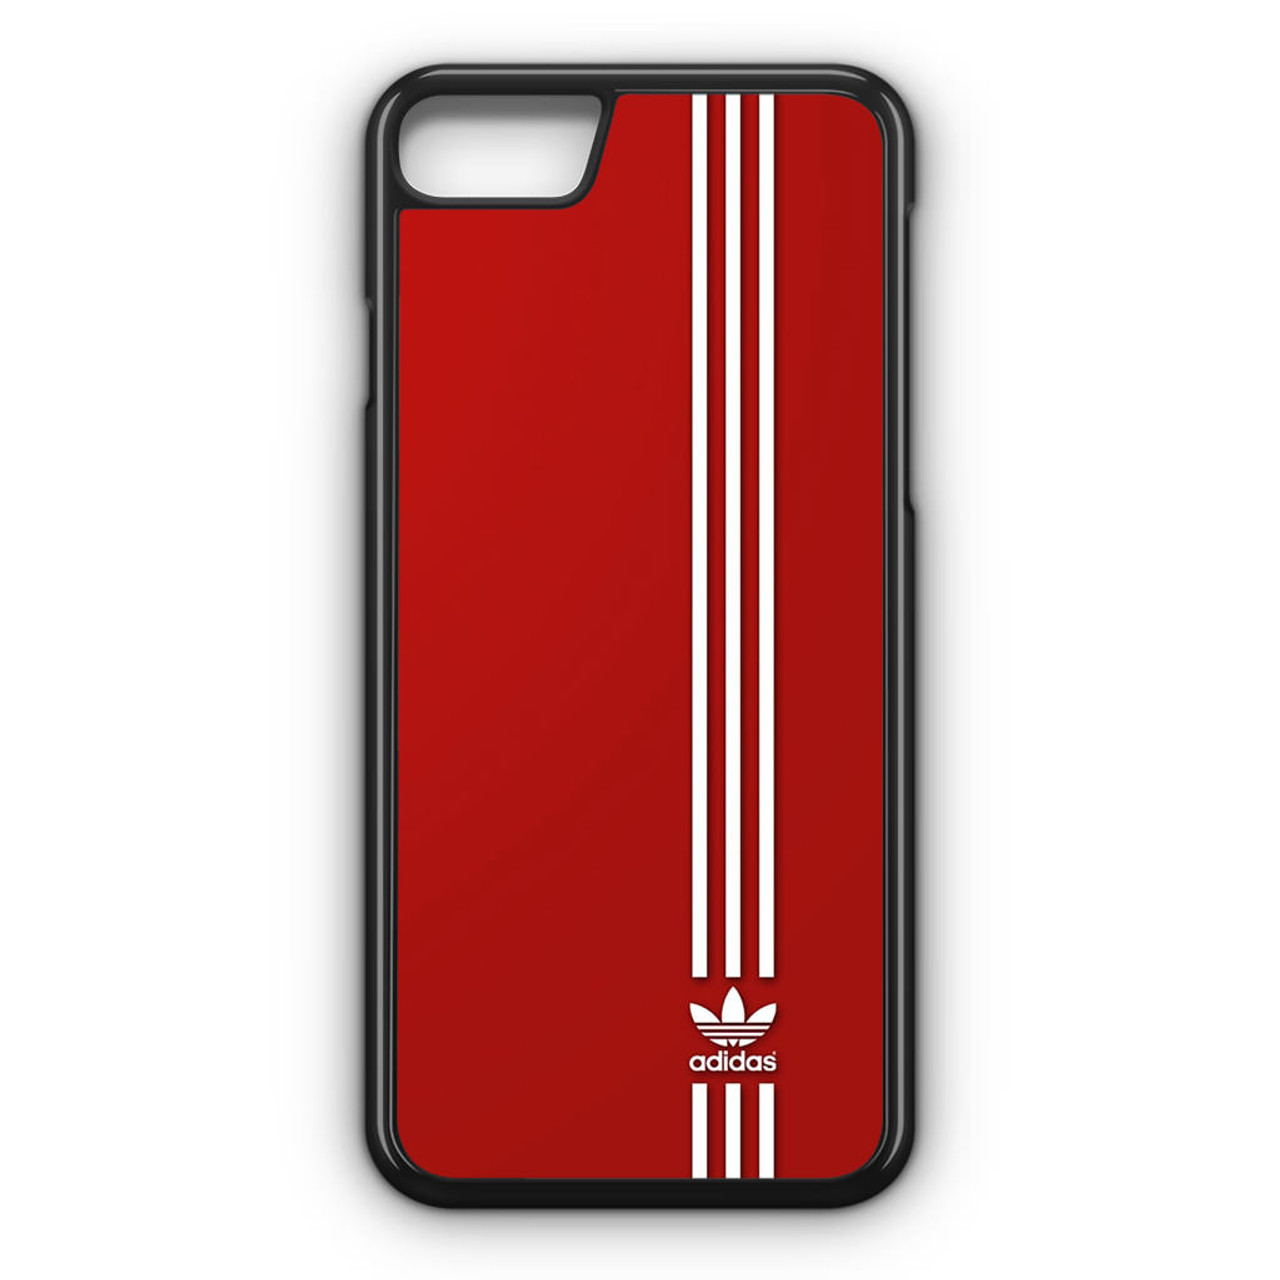 quality design 1e321 eb887 Brand Adidas Red White Sport iPhone 8 Case